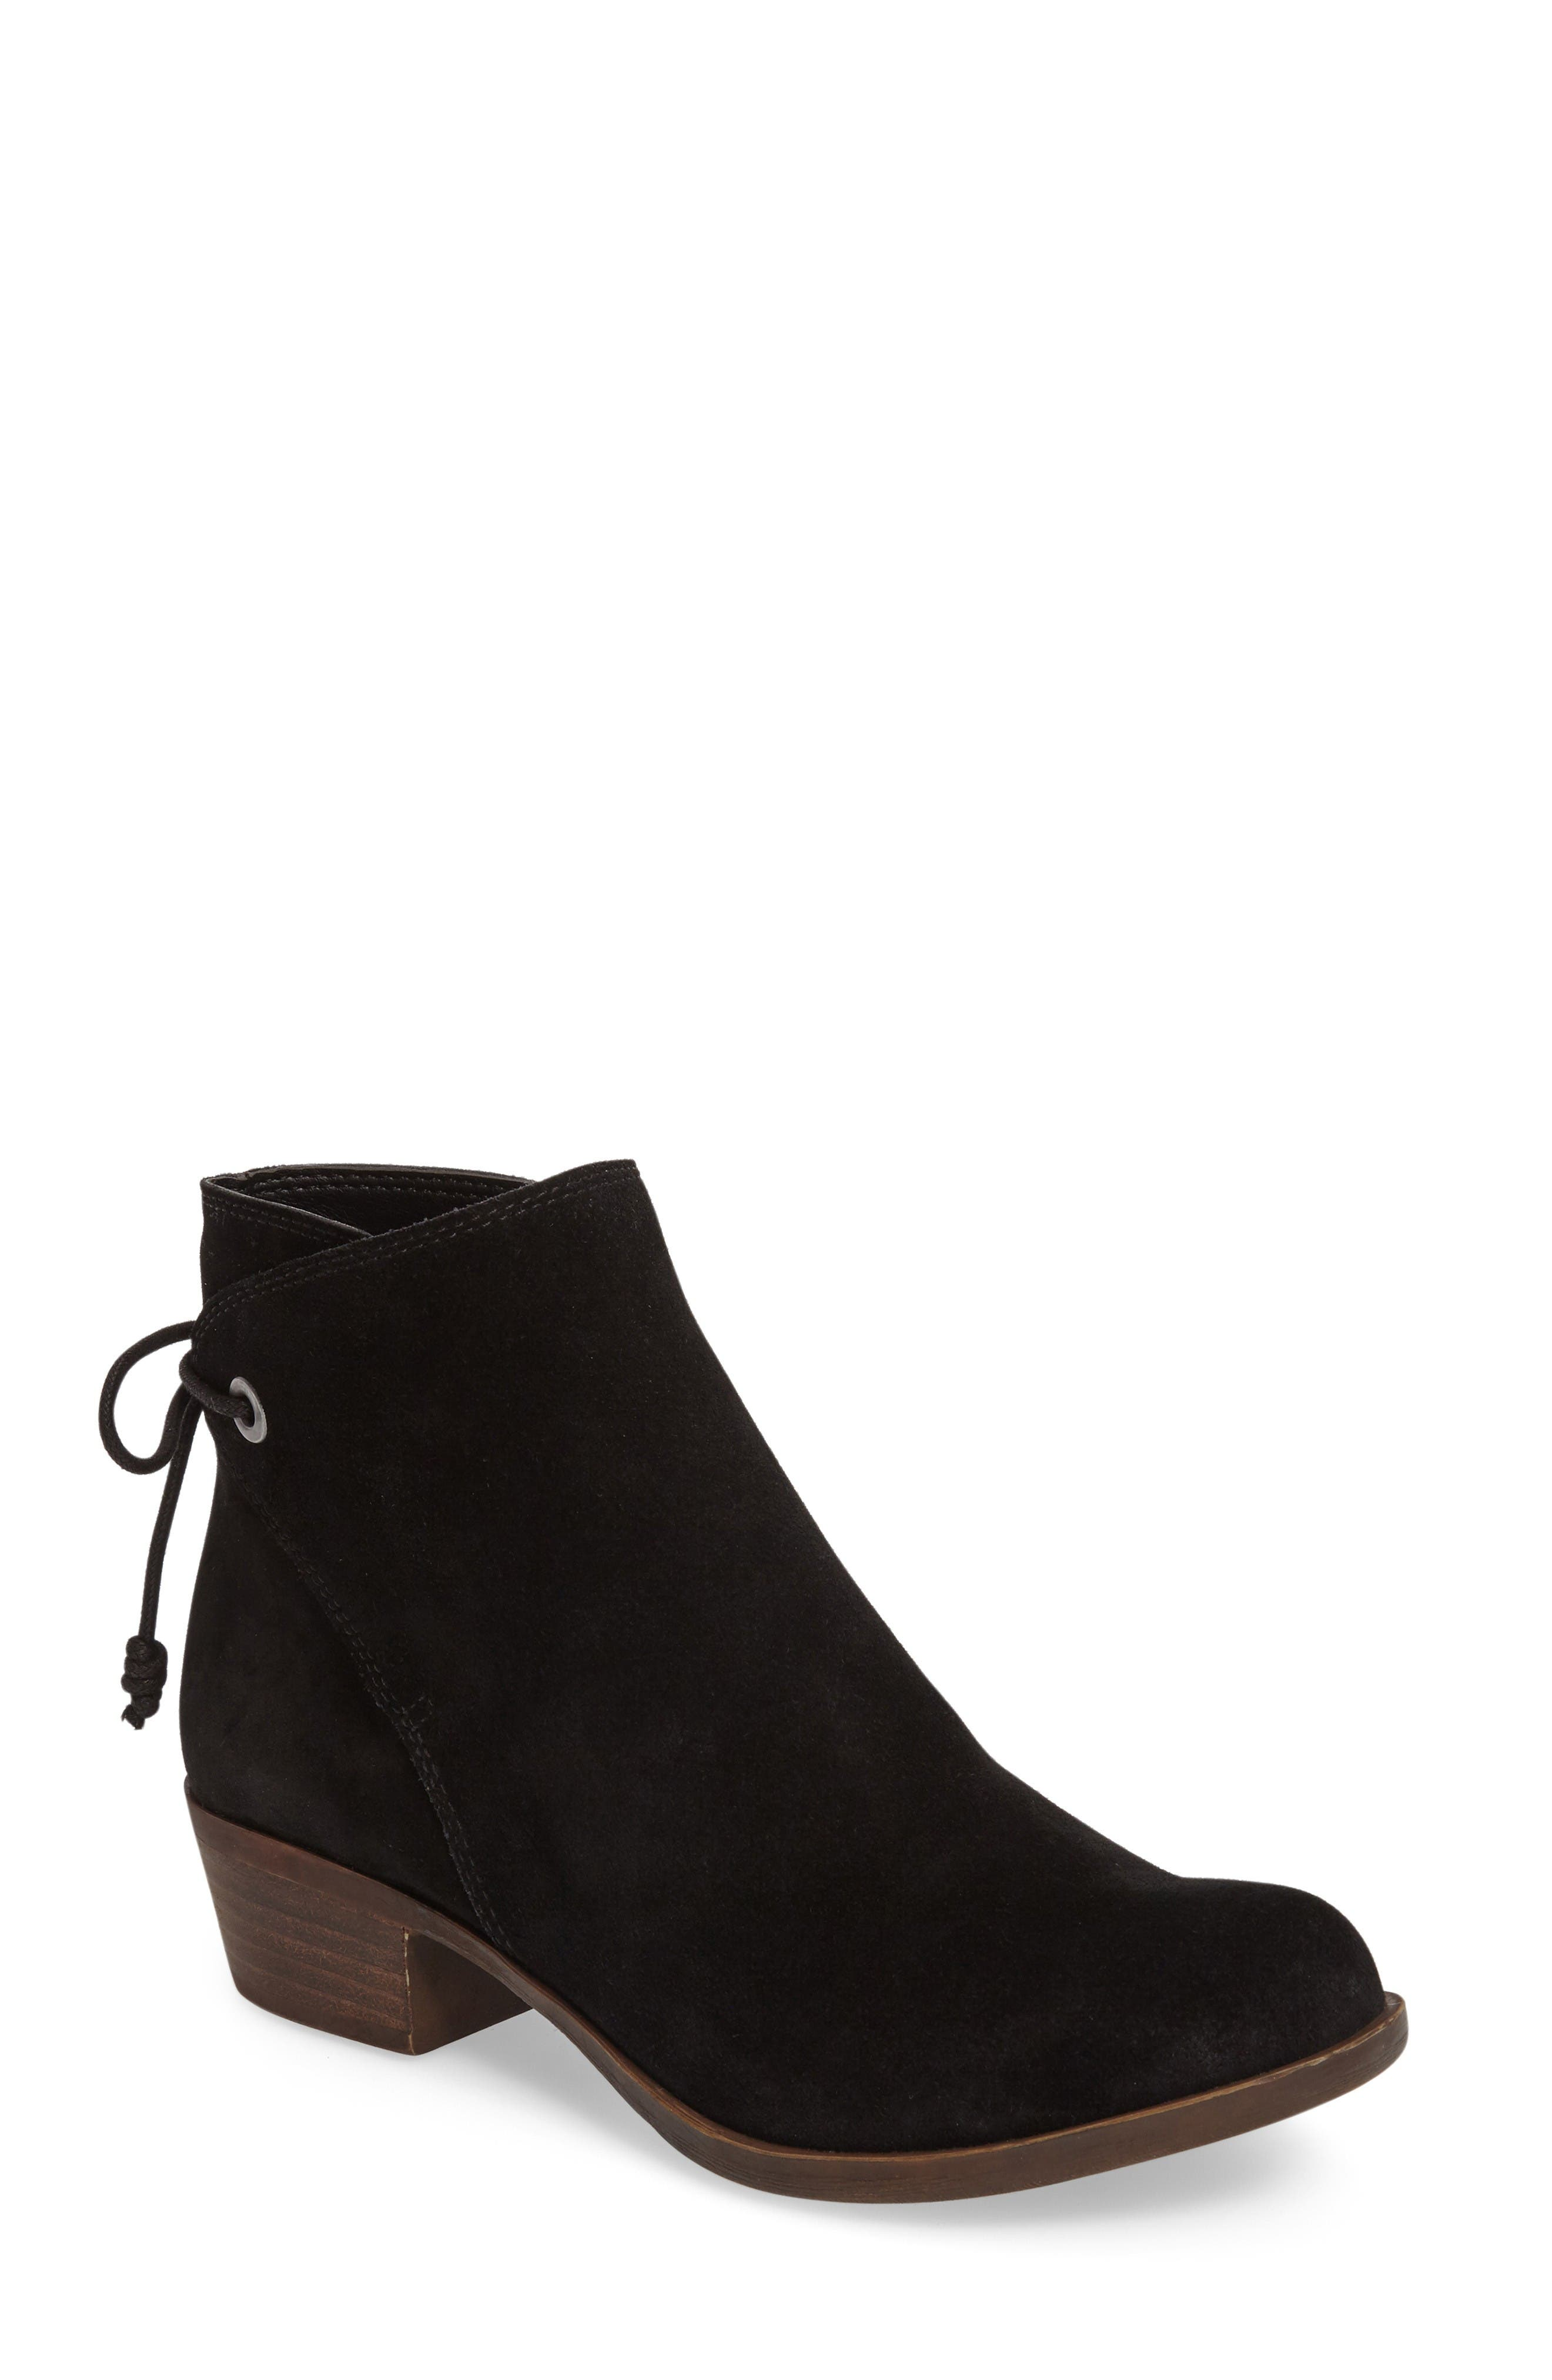 Alternate Image 1 Selected - Lucky Brand Gwenore Tie Bootie (Women)